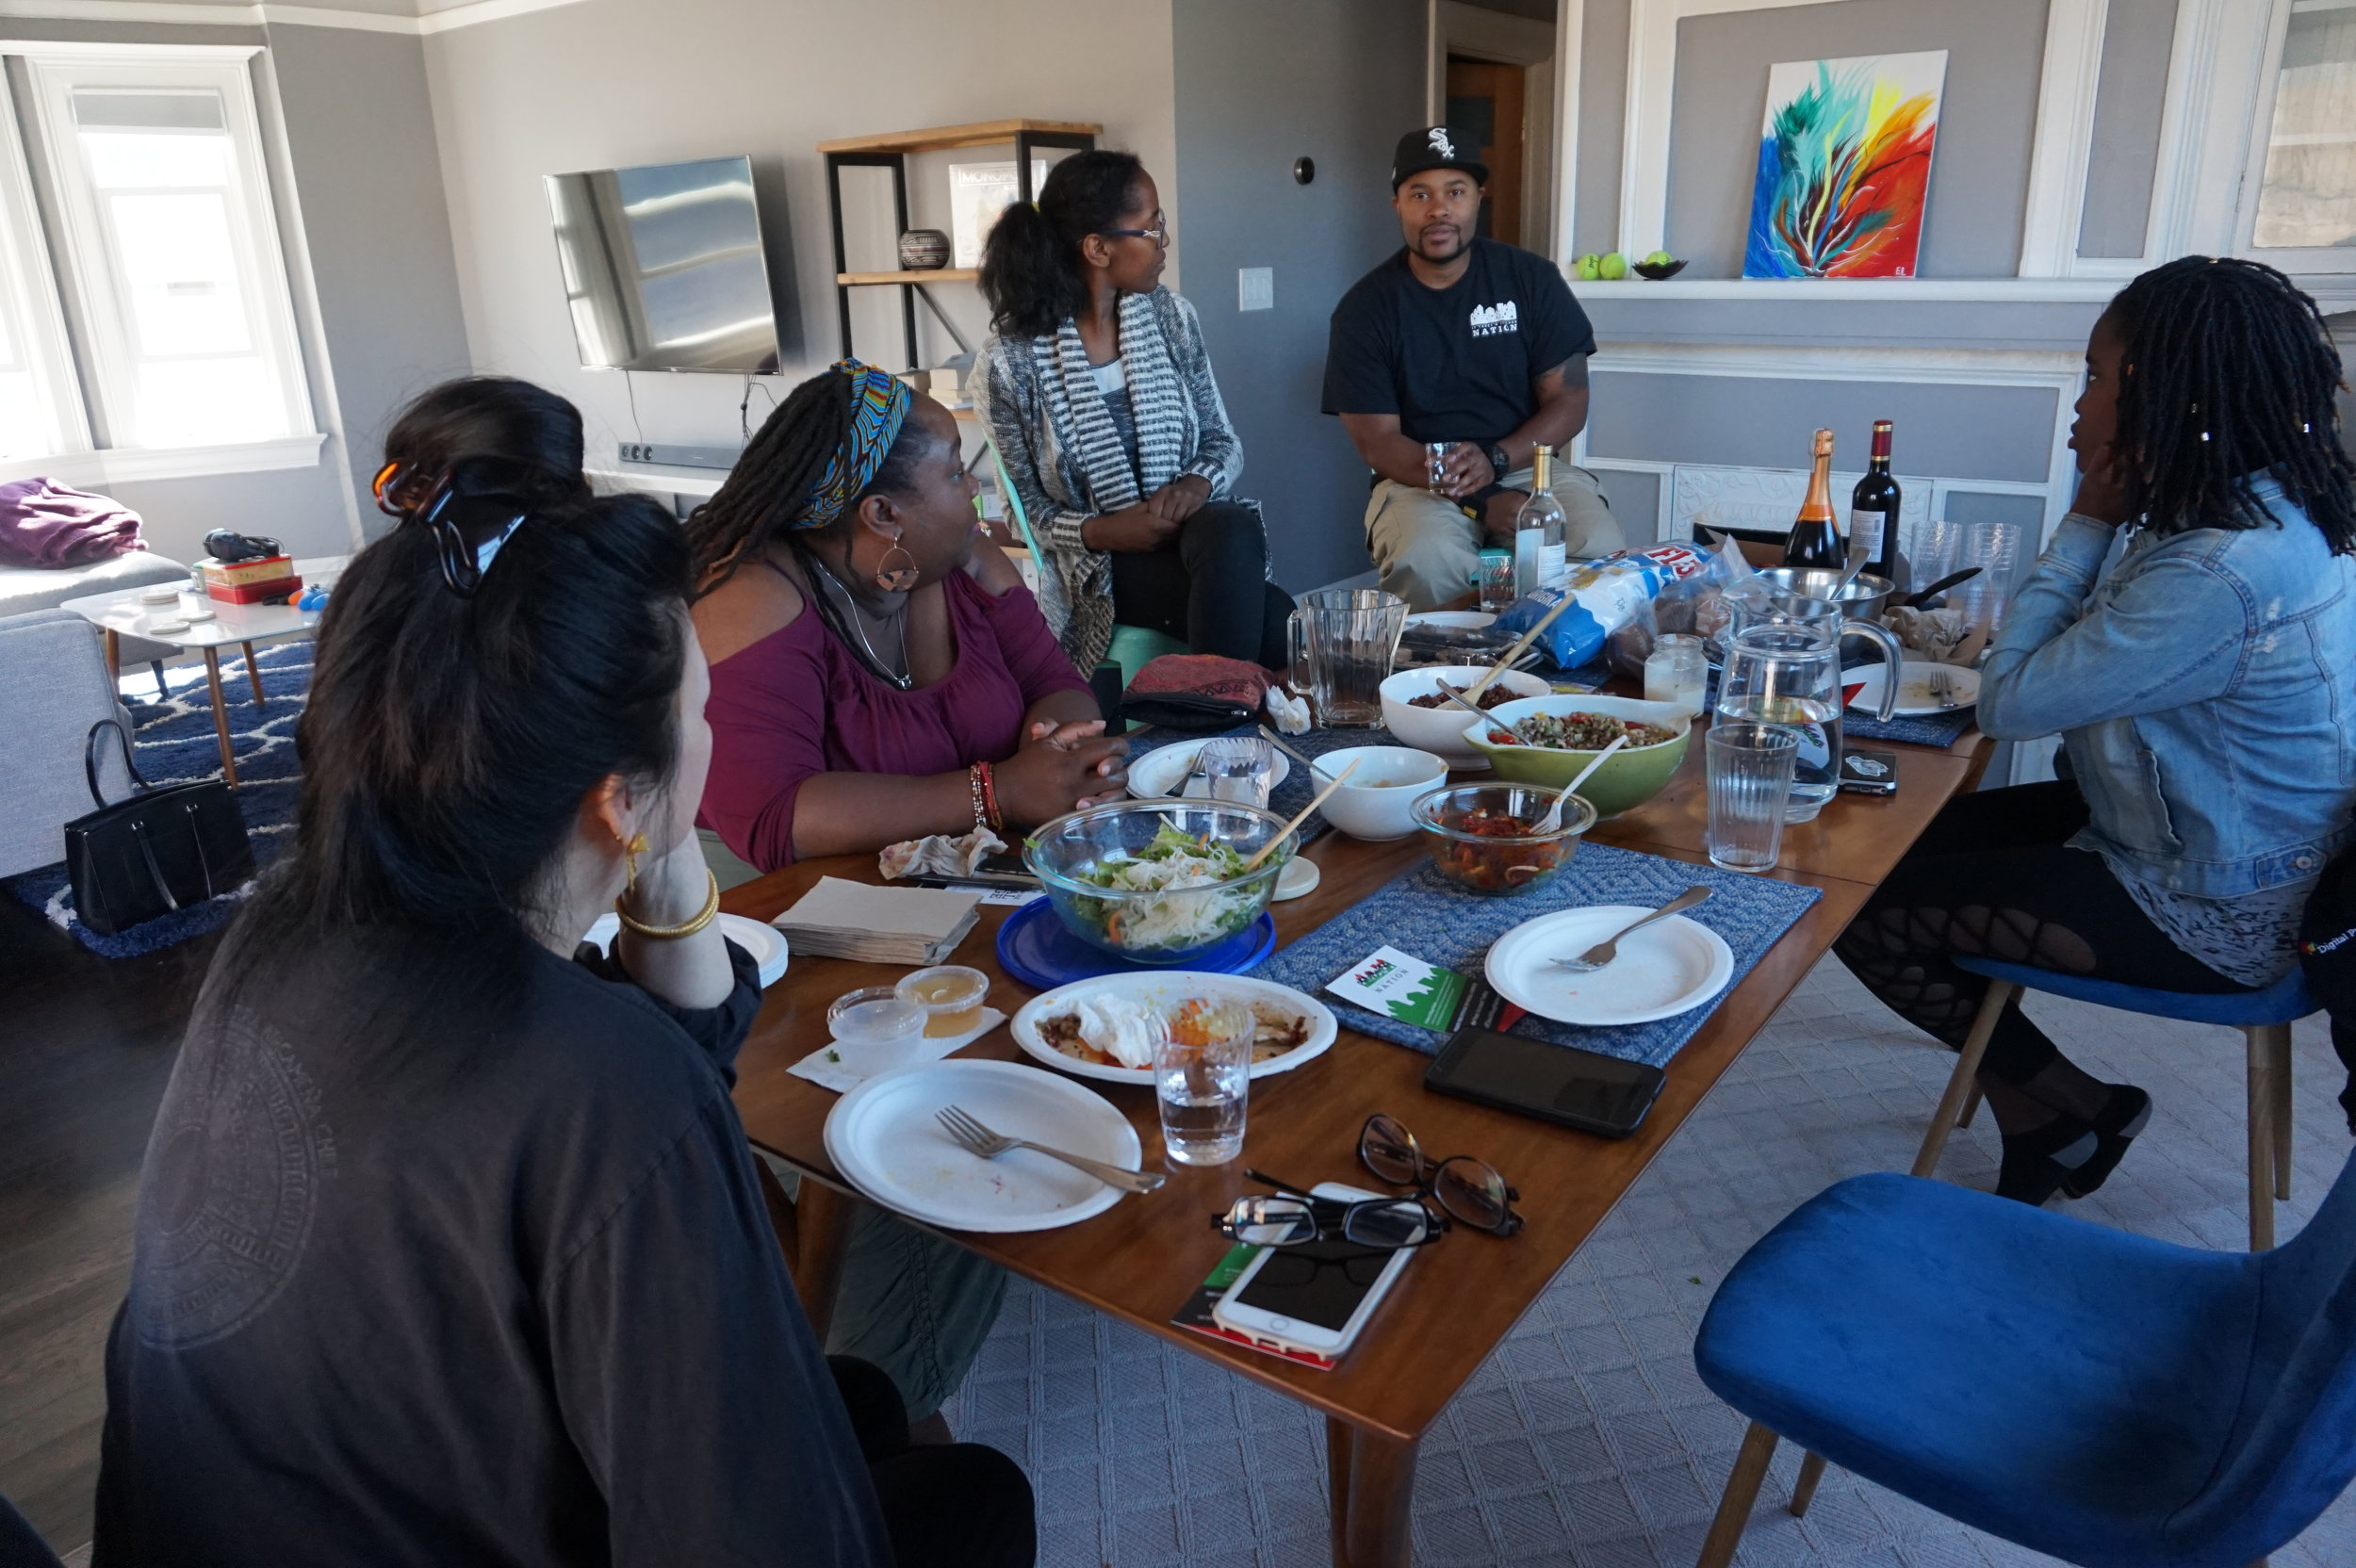 A group discussing family practices of honoring ancestors.